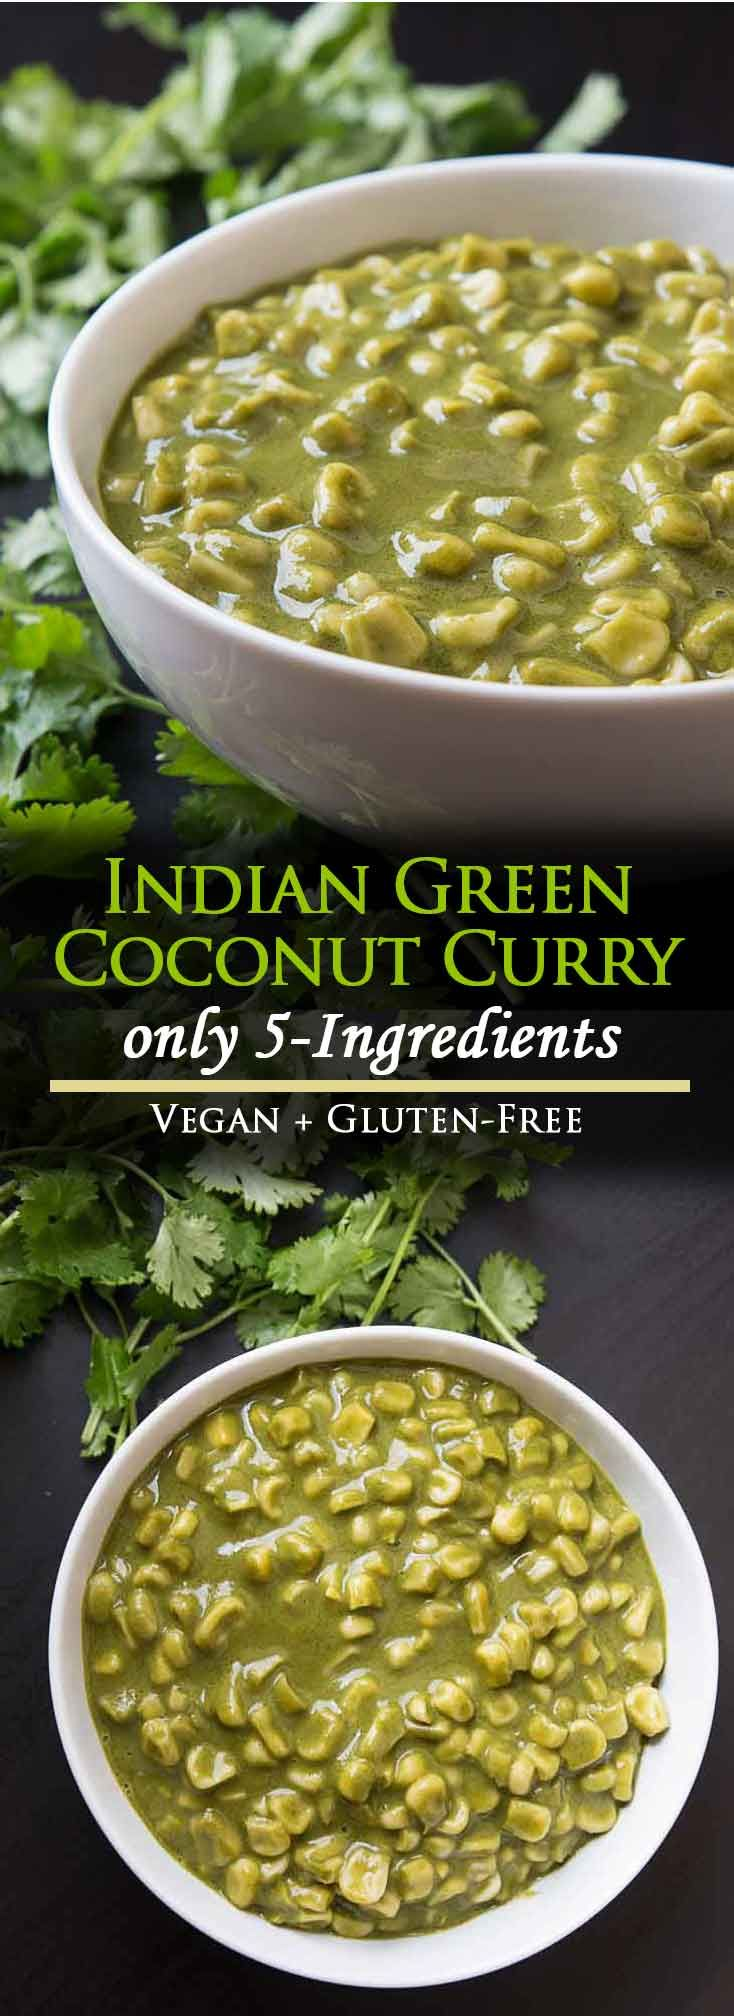 82 best indian food images on pinterest cooking food kitchens and only 10 minutes to prep and doesnt require any specific spices this vegan indian curry recipe is rich easy healthy and a crowd pleaser forumfinder Image collections